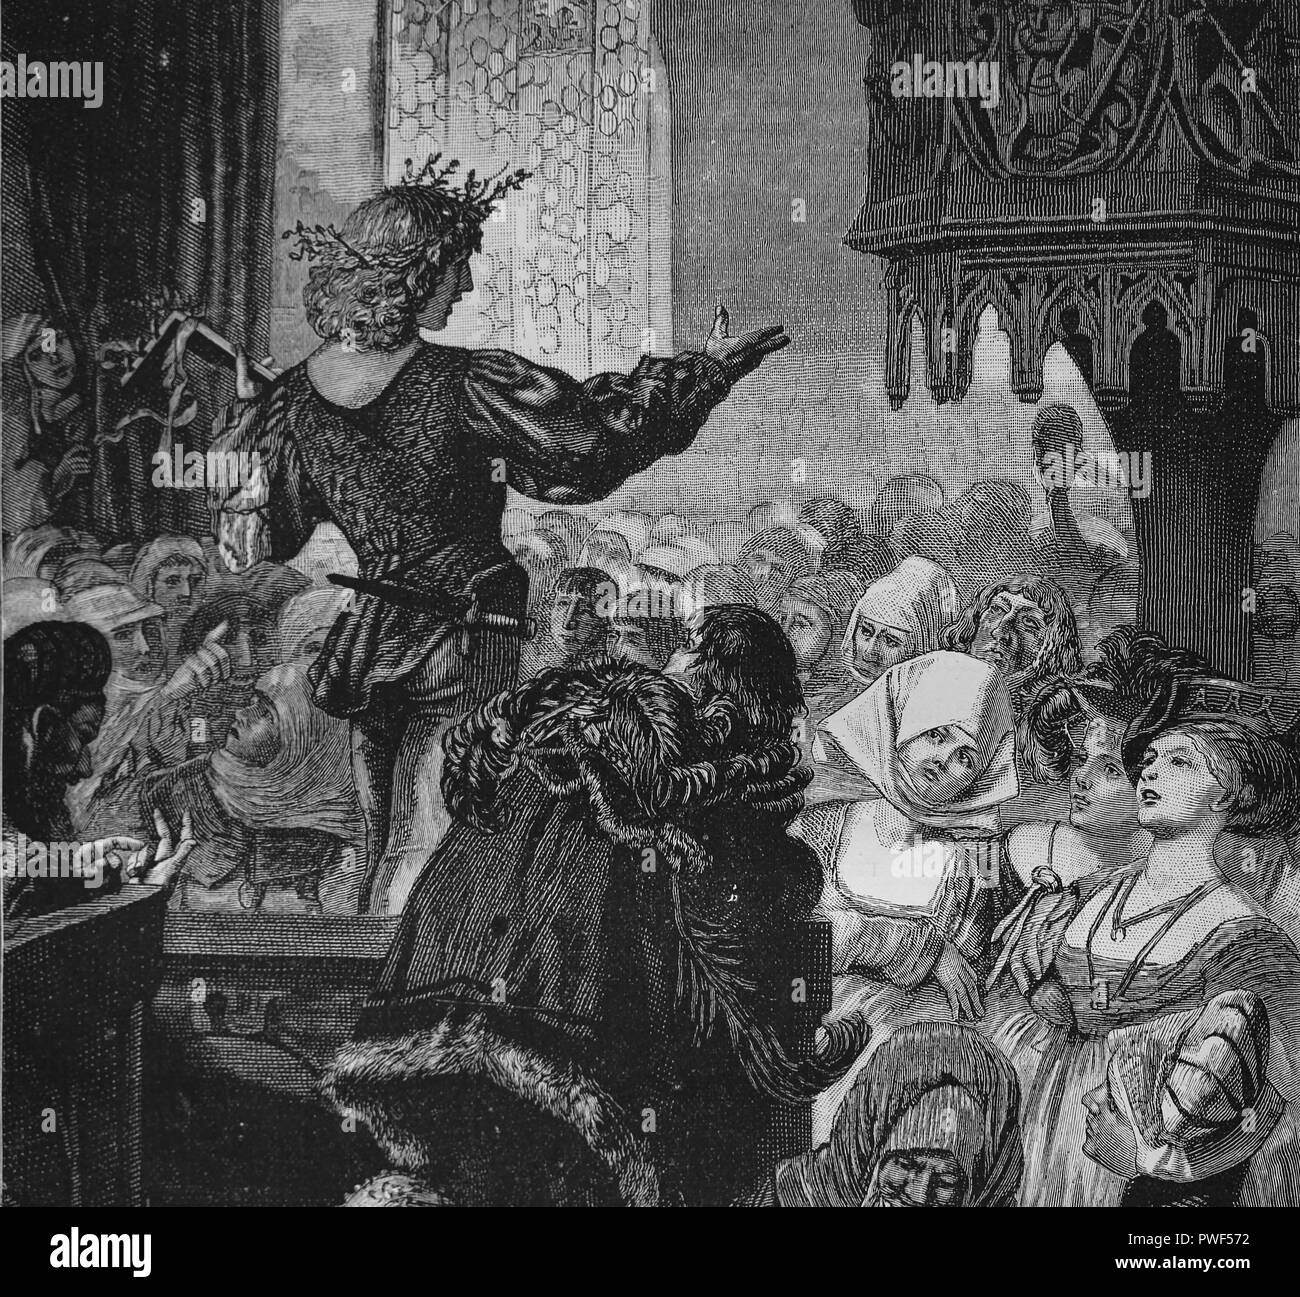 Master singer (Meistersinger). Germany. Contest of music. 14th-16th century. Engraving, 1882. - Stock Image